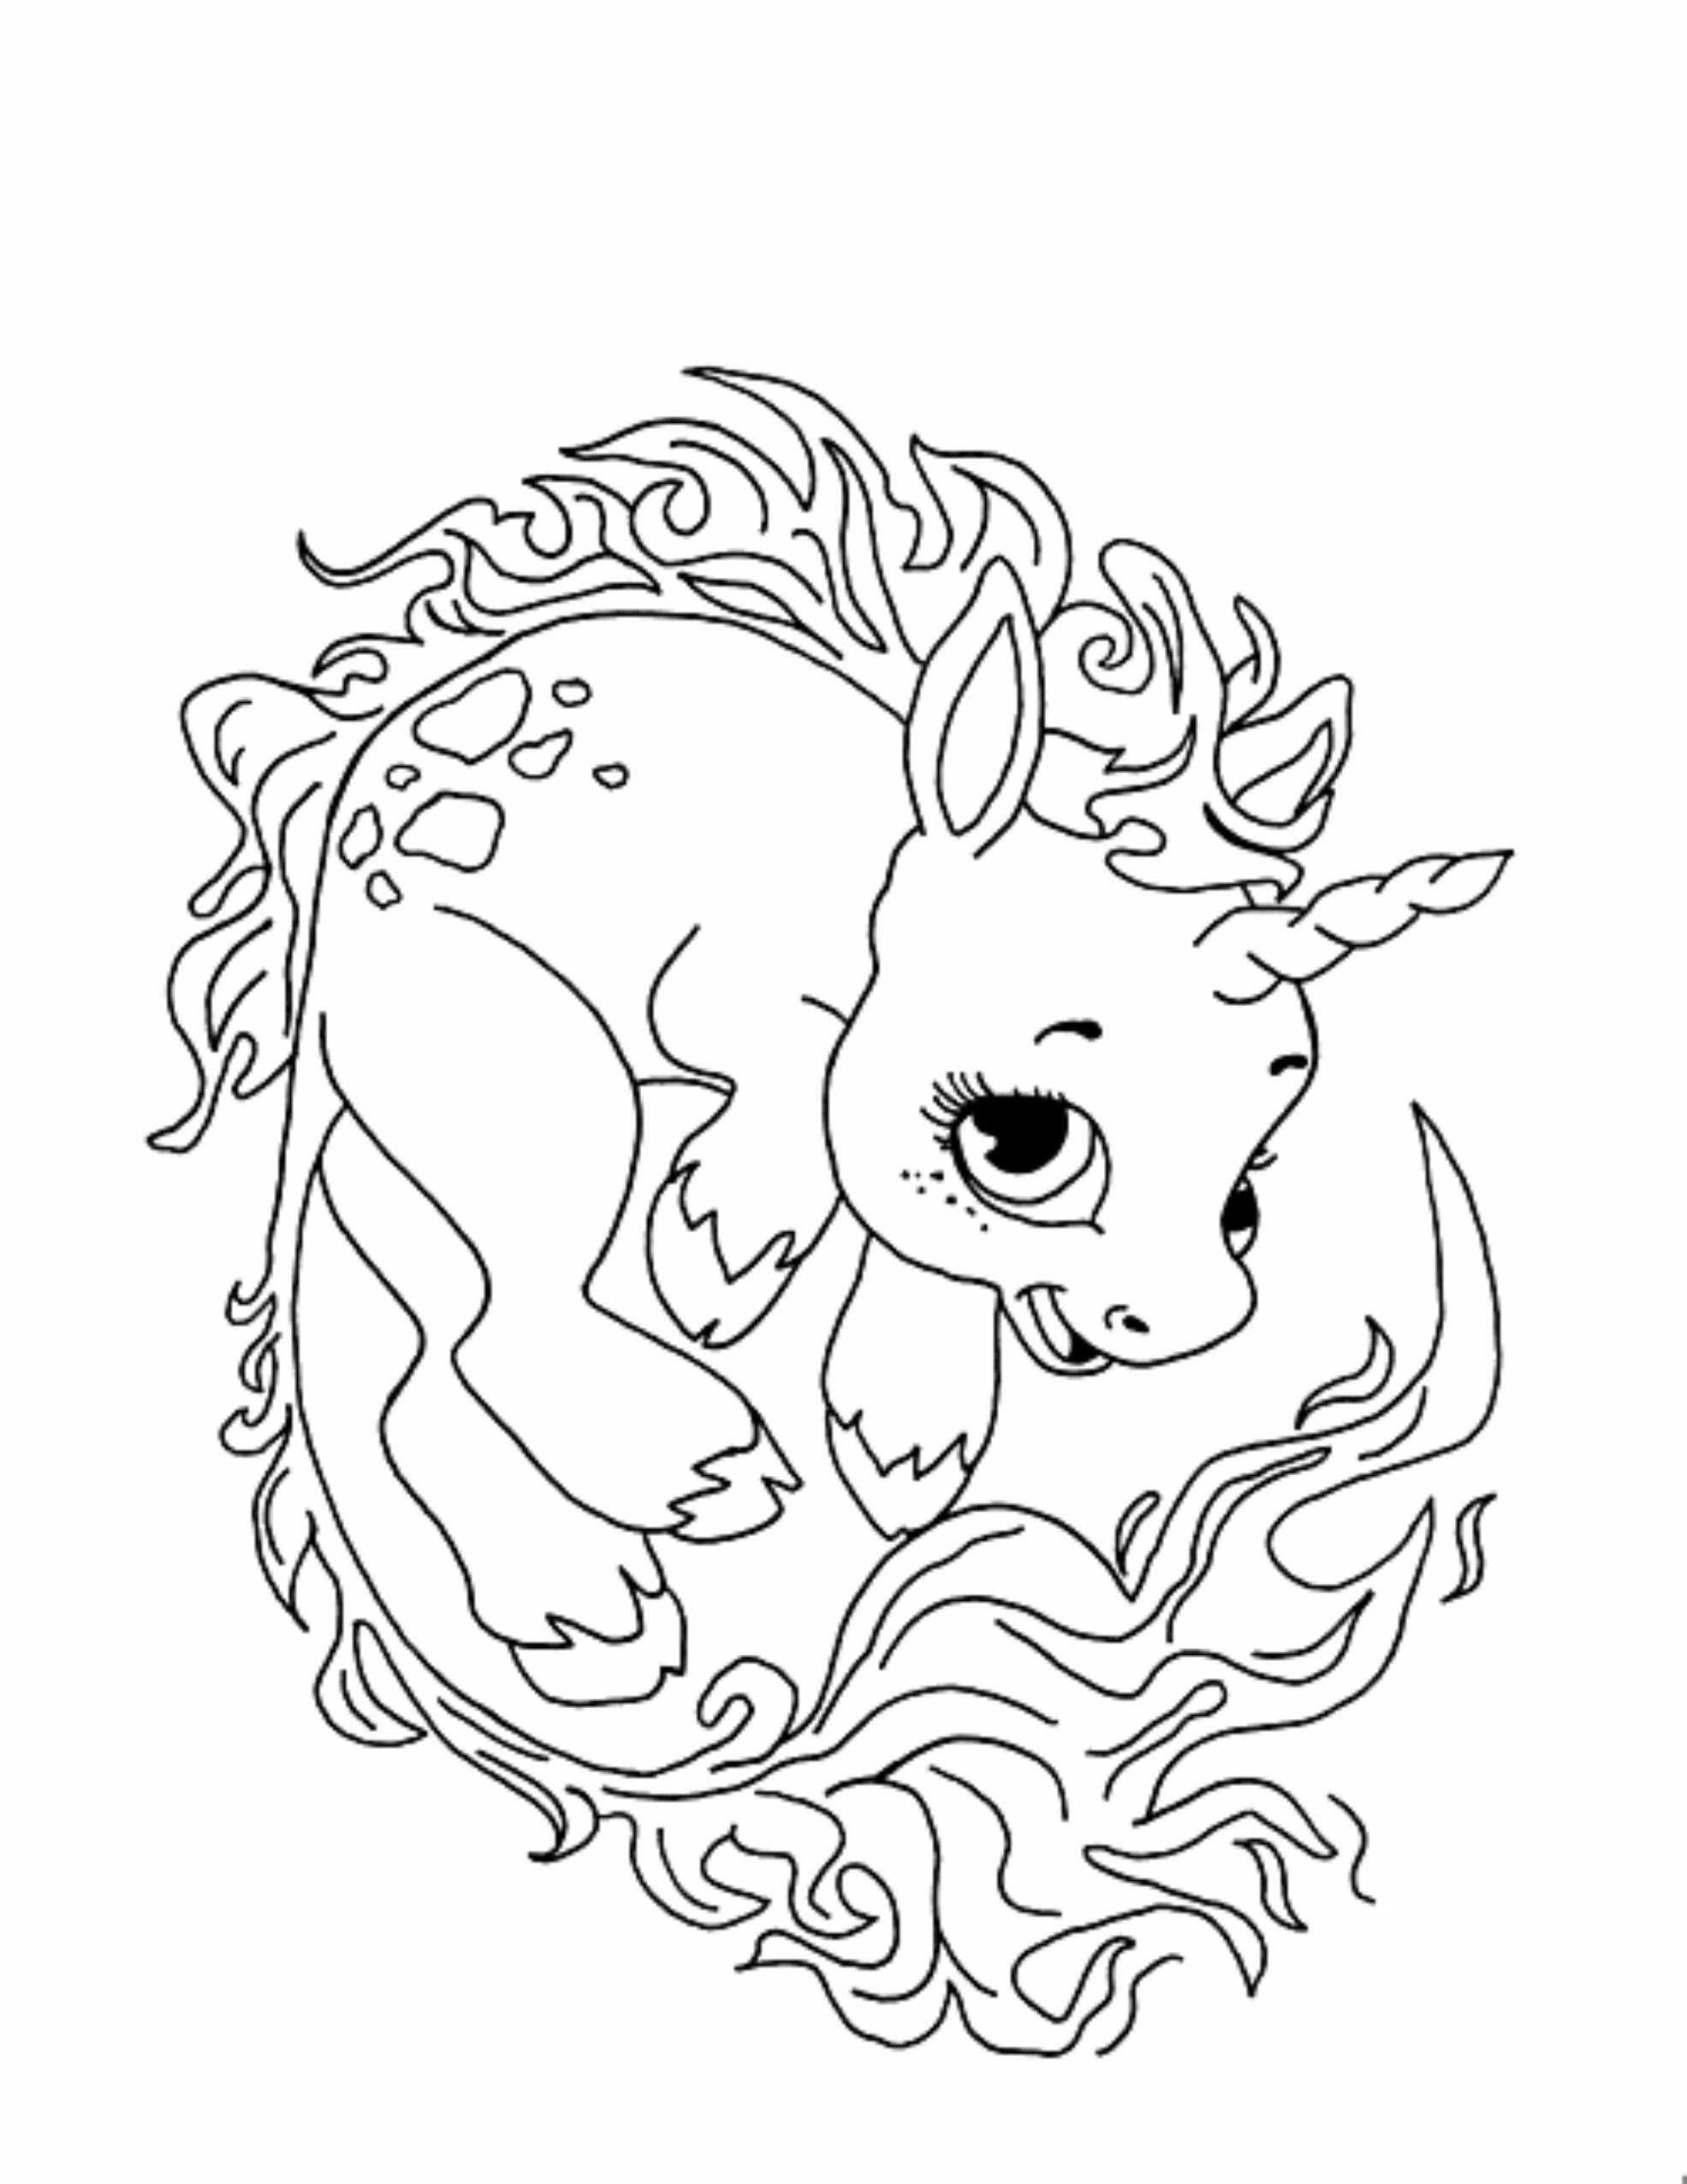 6 pics of cute unicorn coloring pages cute baby unicorn coloring